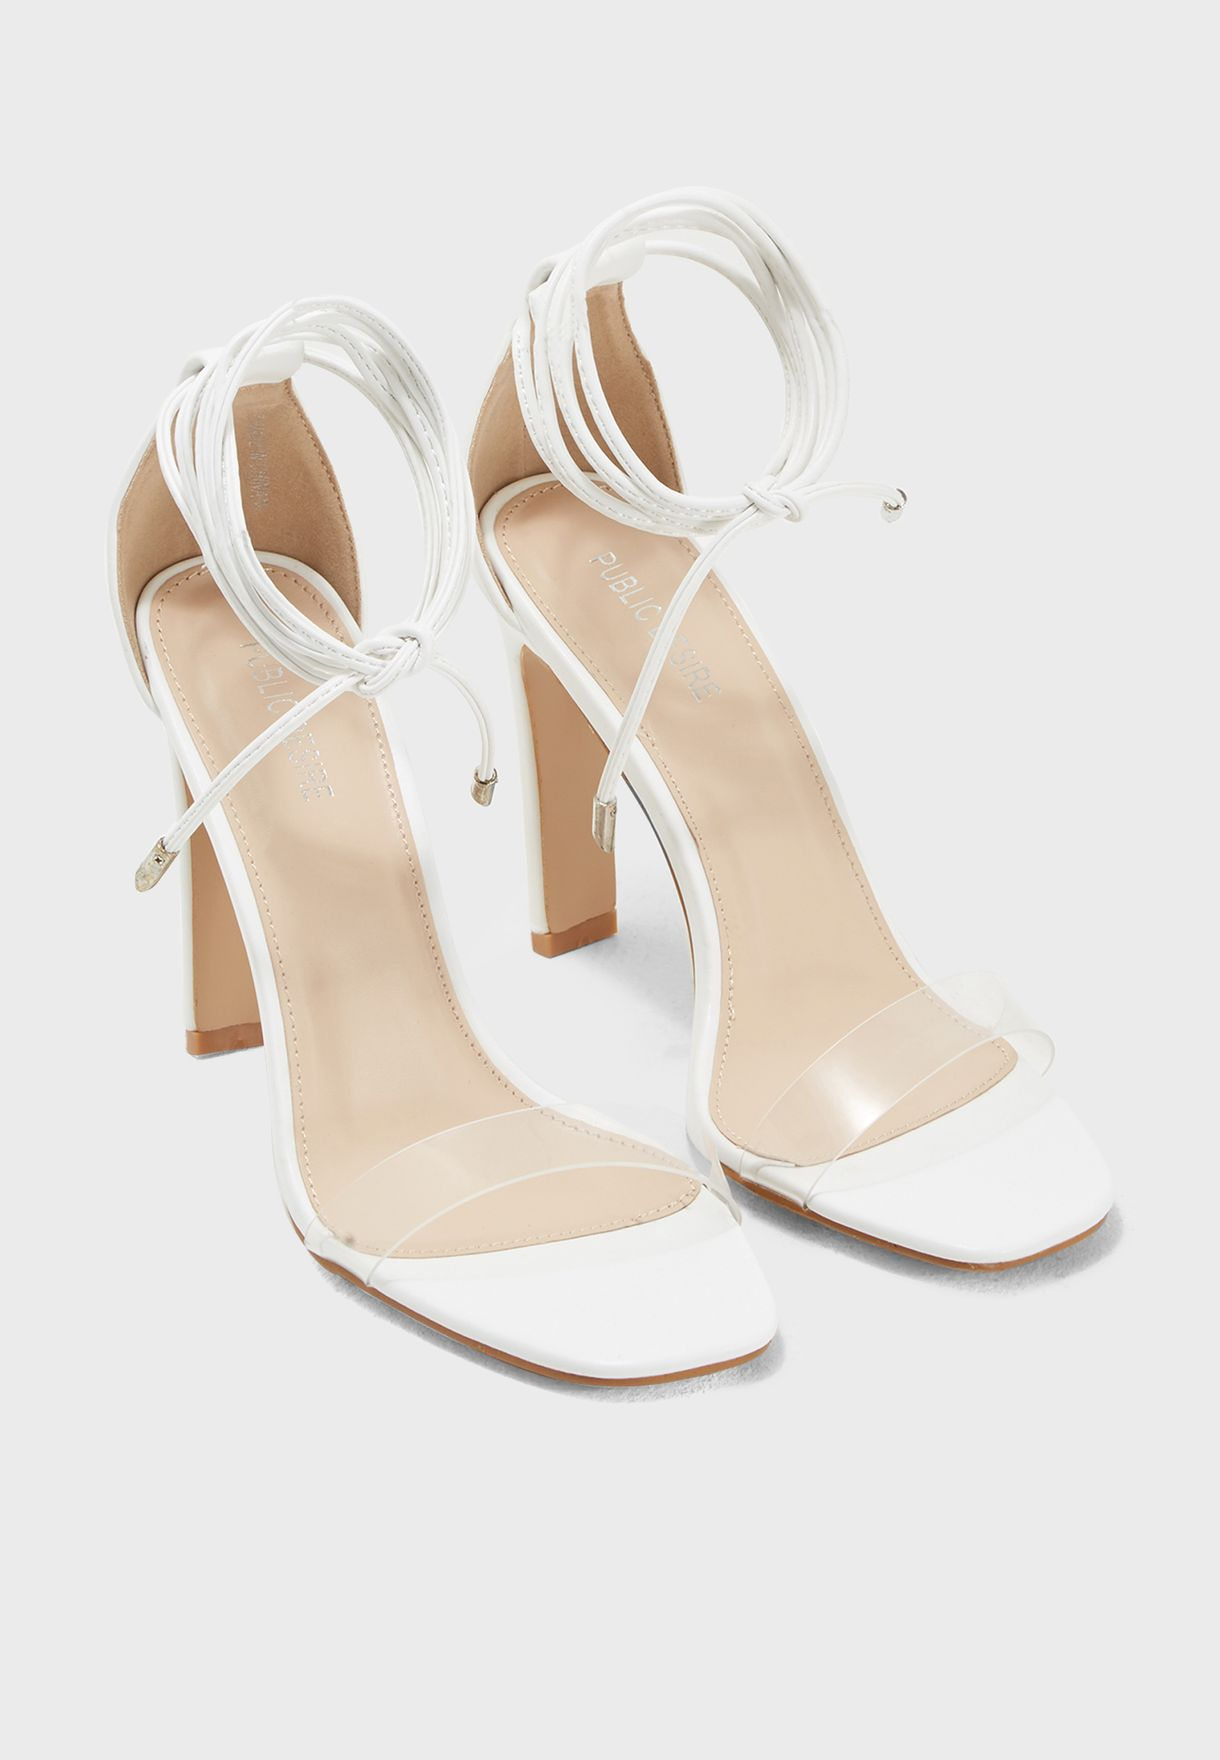 6951997822e Shop Public Desire clear Tierra Lace Up Perspex Barely There Heel ...